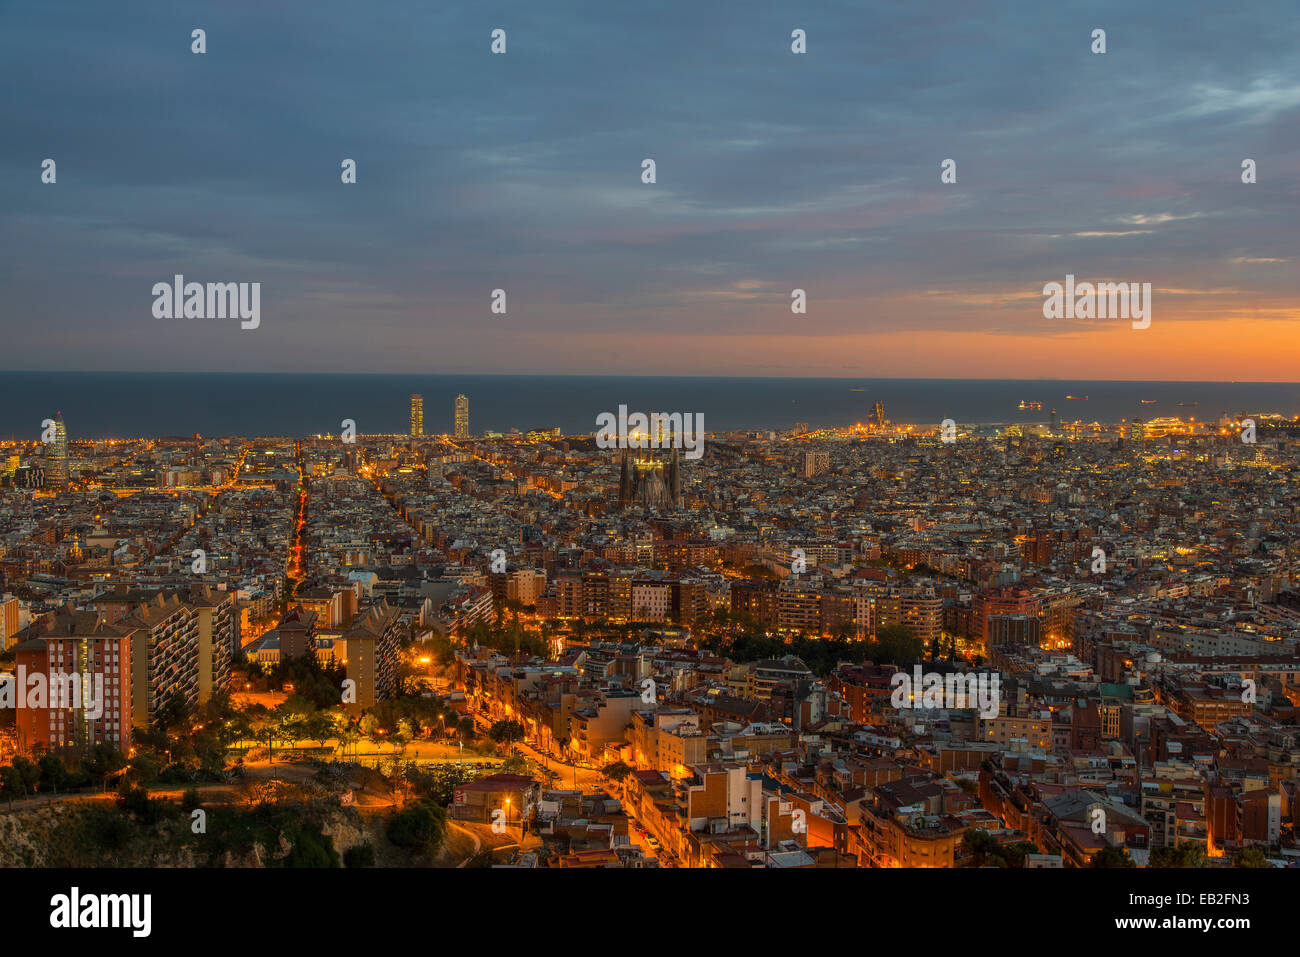 Sunset city skyline, Barcelona, Catalonia, Spain - Stock Image